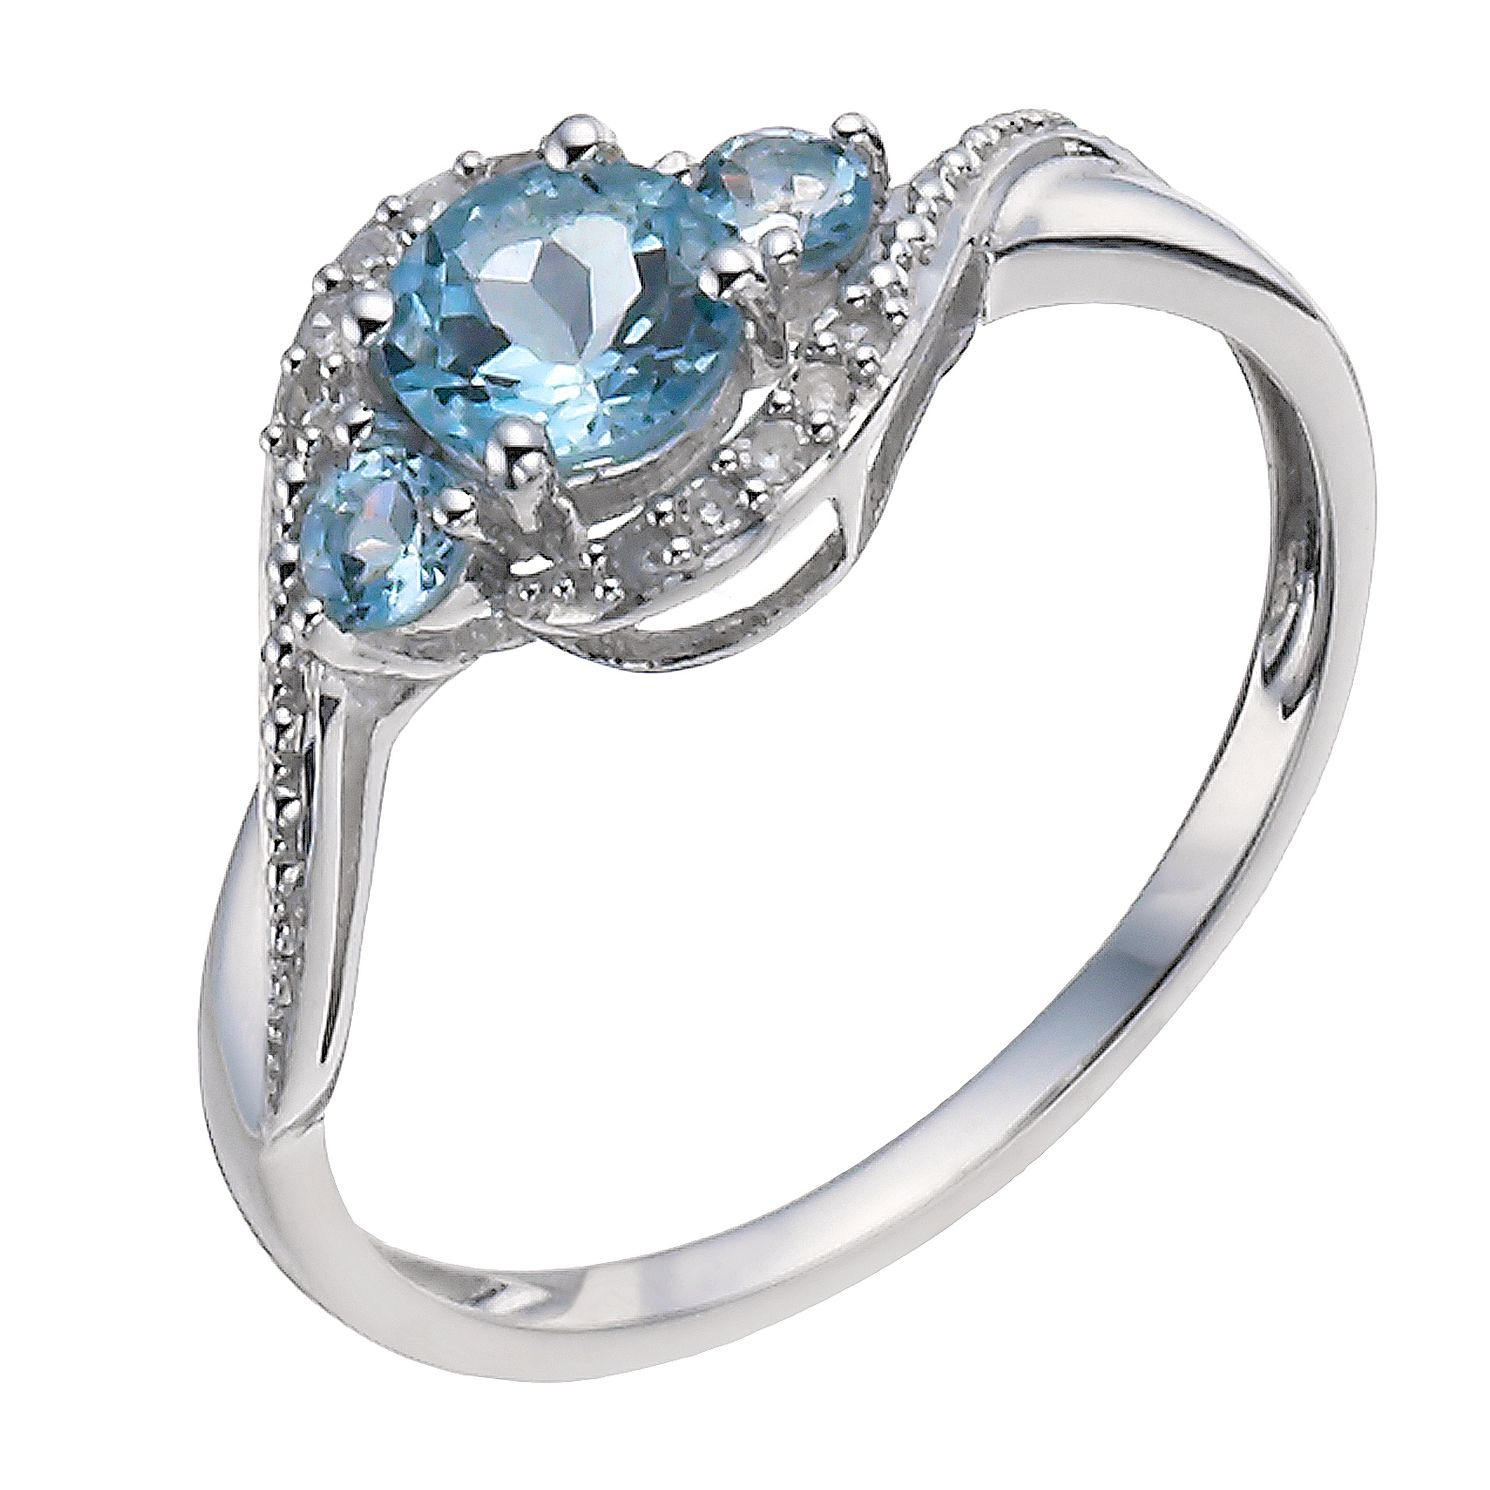 dnjj gold au il listing jewellery zoom aquamarine fullxfull floral ring in engagement pebble white